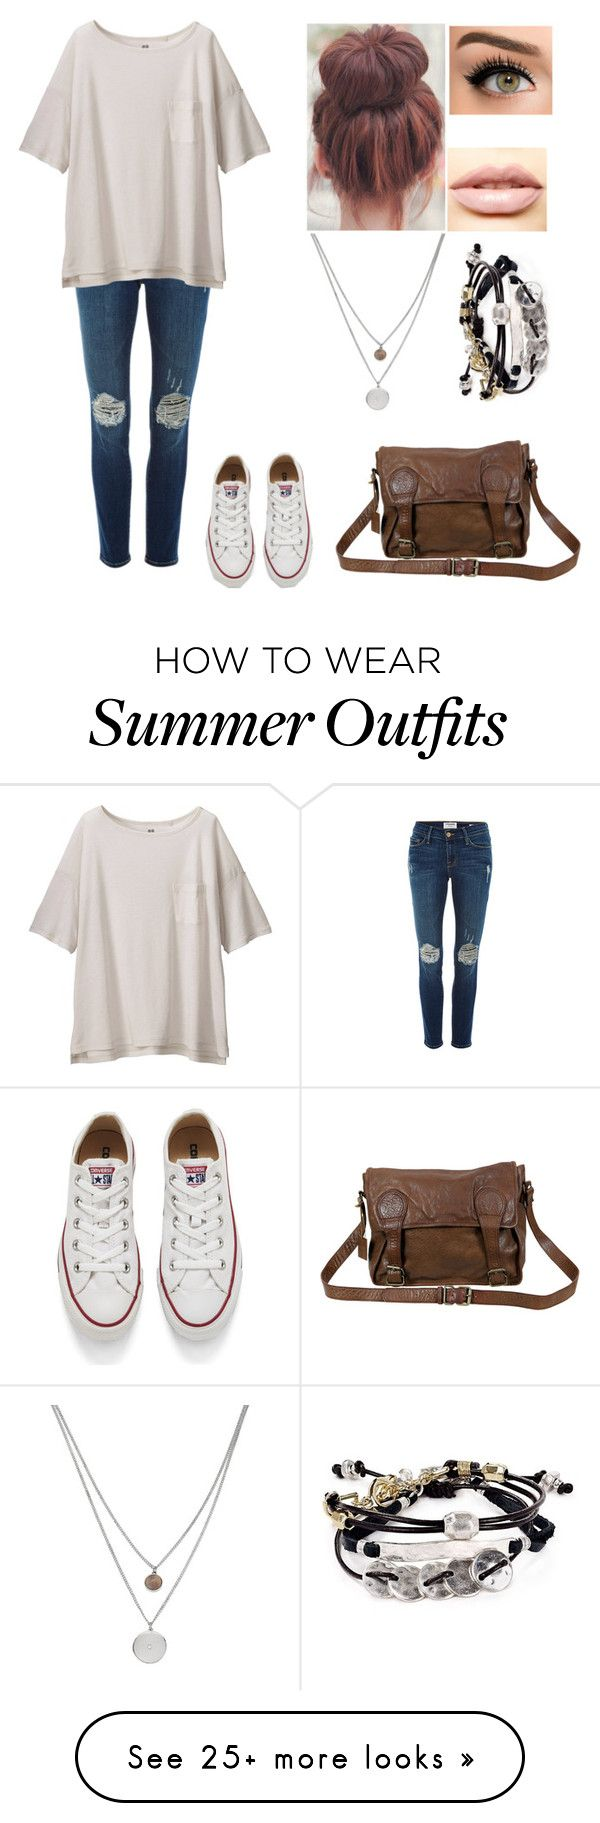 """""""lazy day outfit."""" by kerryhere on Polyvore featuring Frame Denim, Uniqlo, Converse, LASplash, Kenneth Cole, Robert Lee Morris, VIPARO, women's clothing, women's fashion and women"""